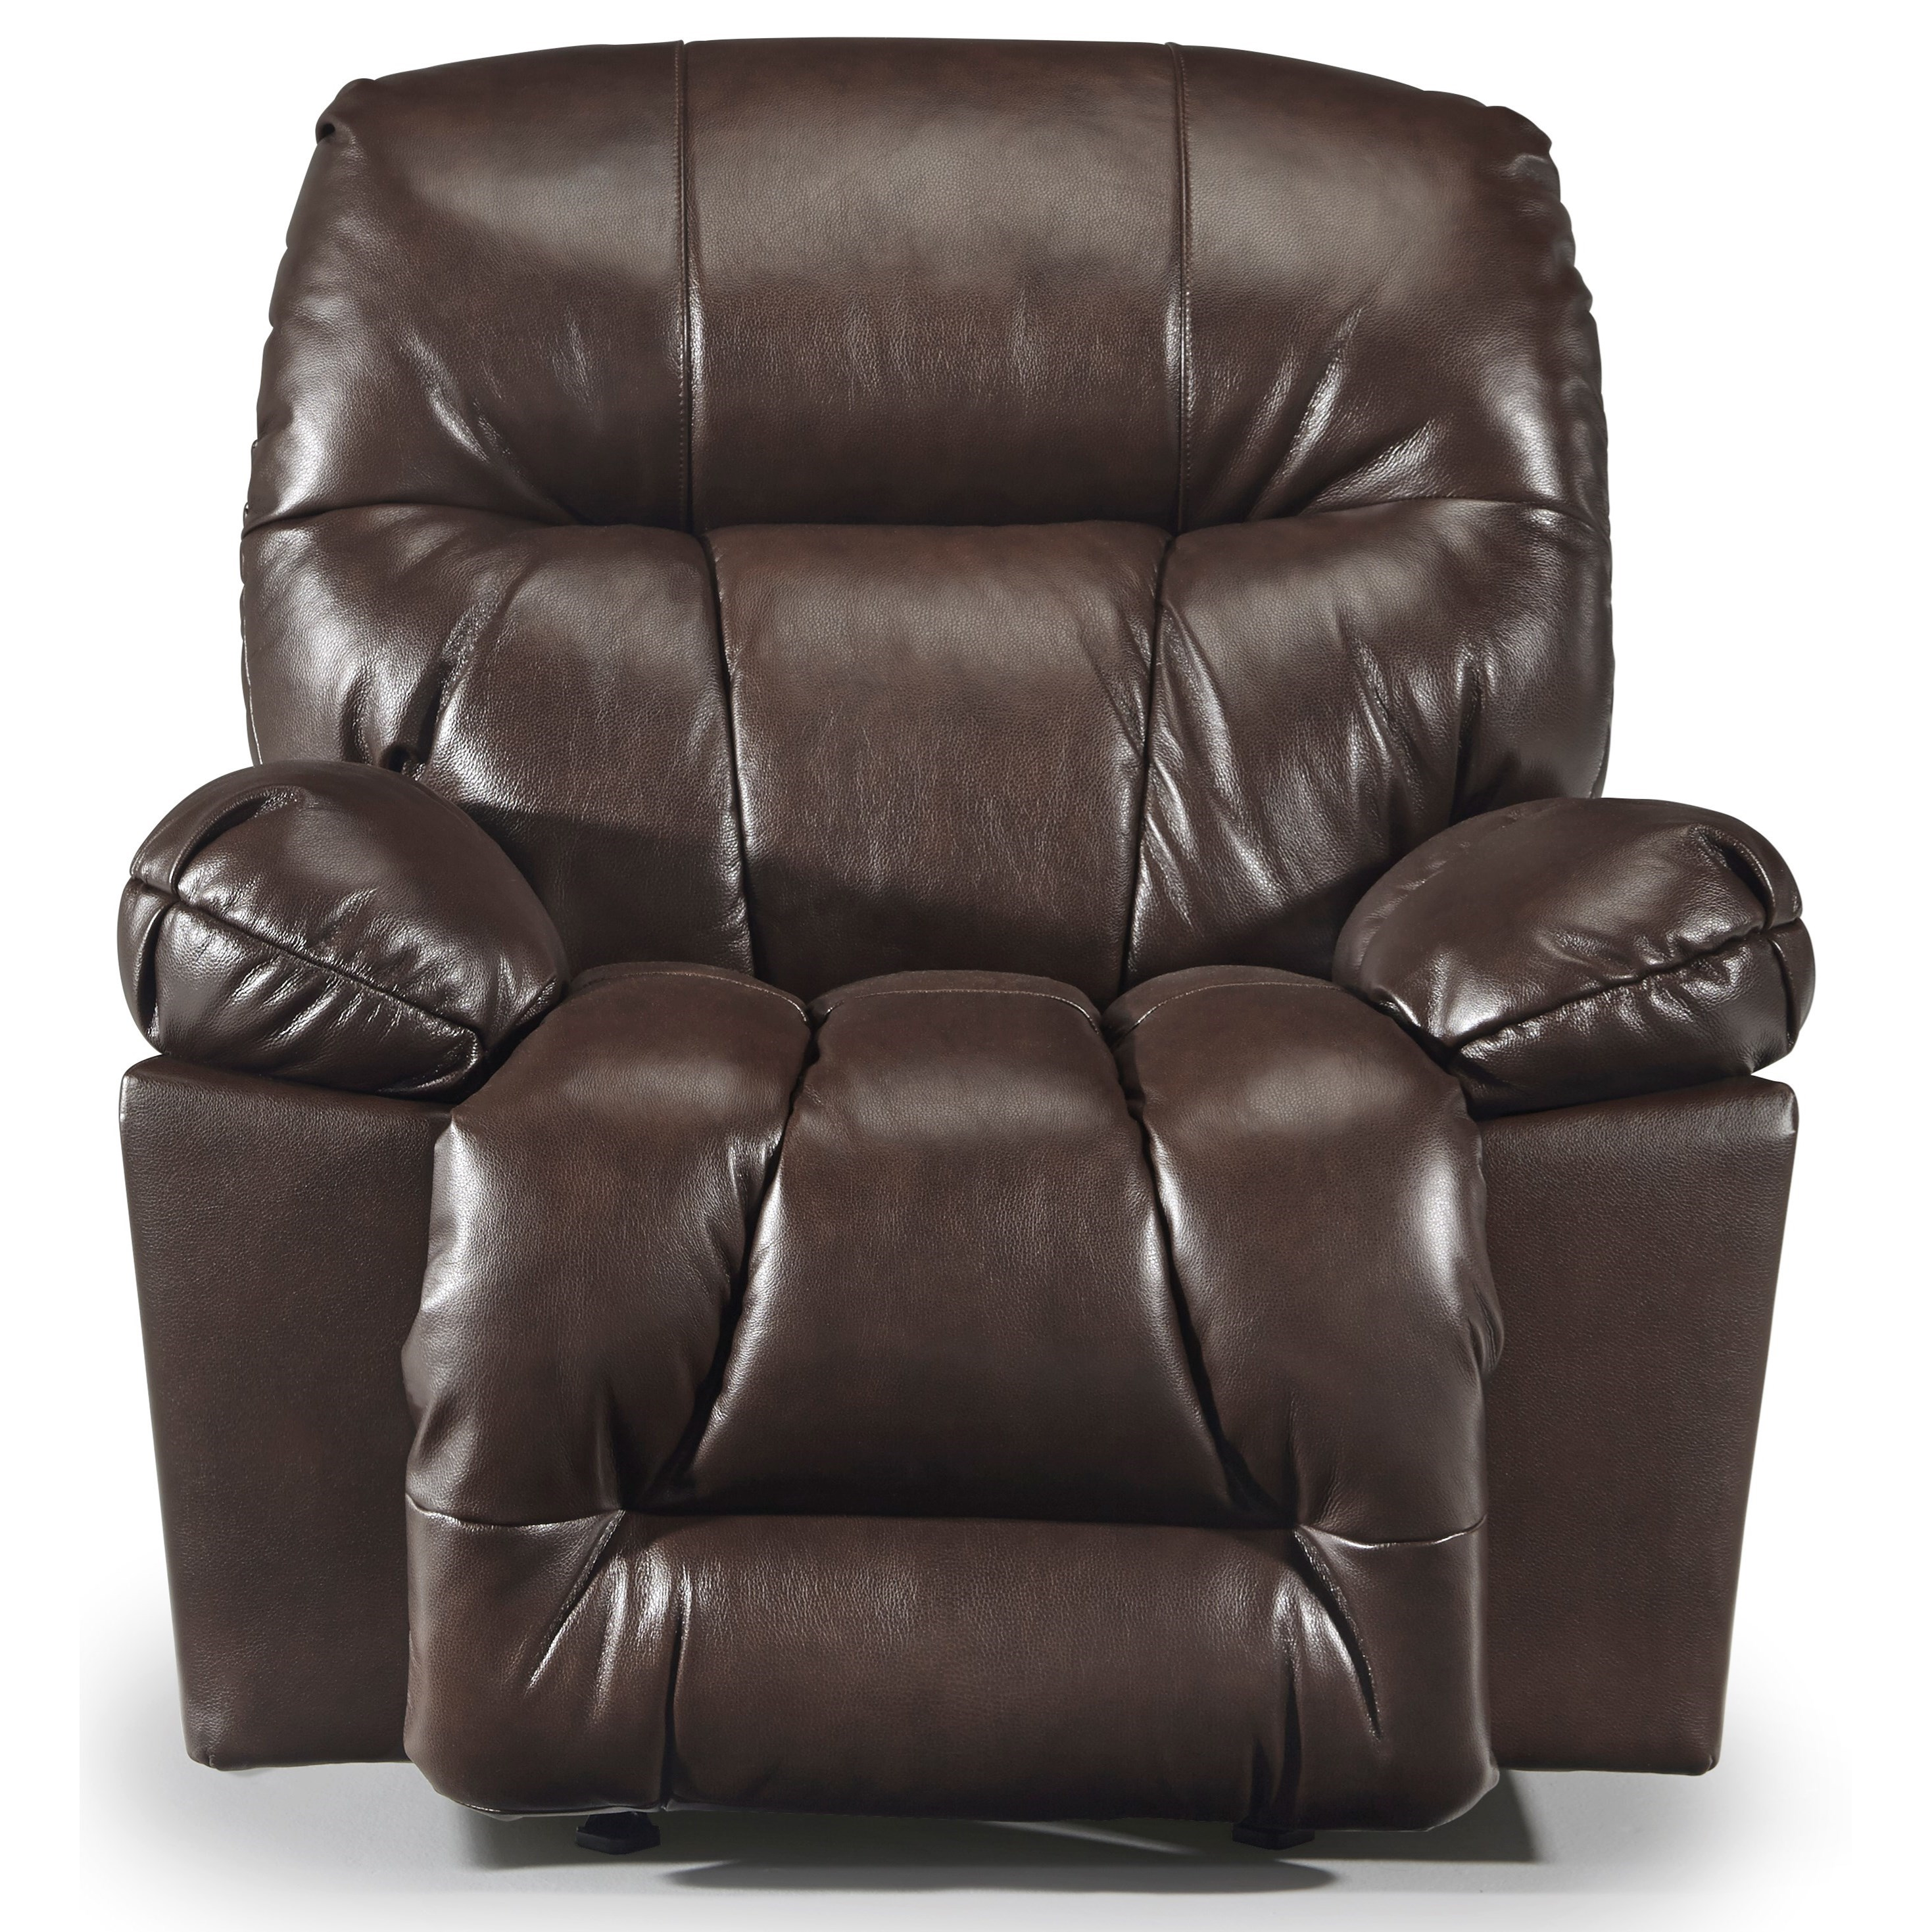 Retreat Rocker Recliner by Best Home Furnishings at Baer's Furniture